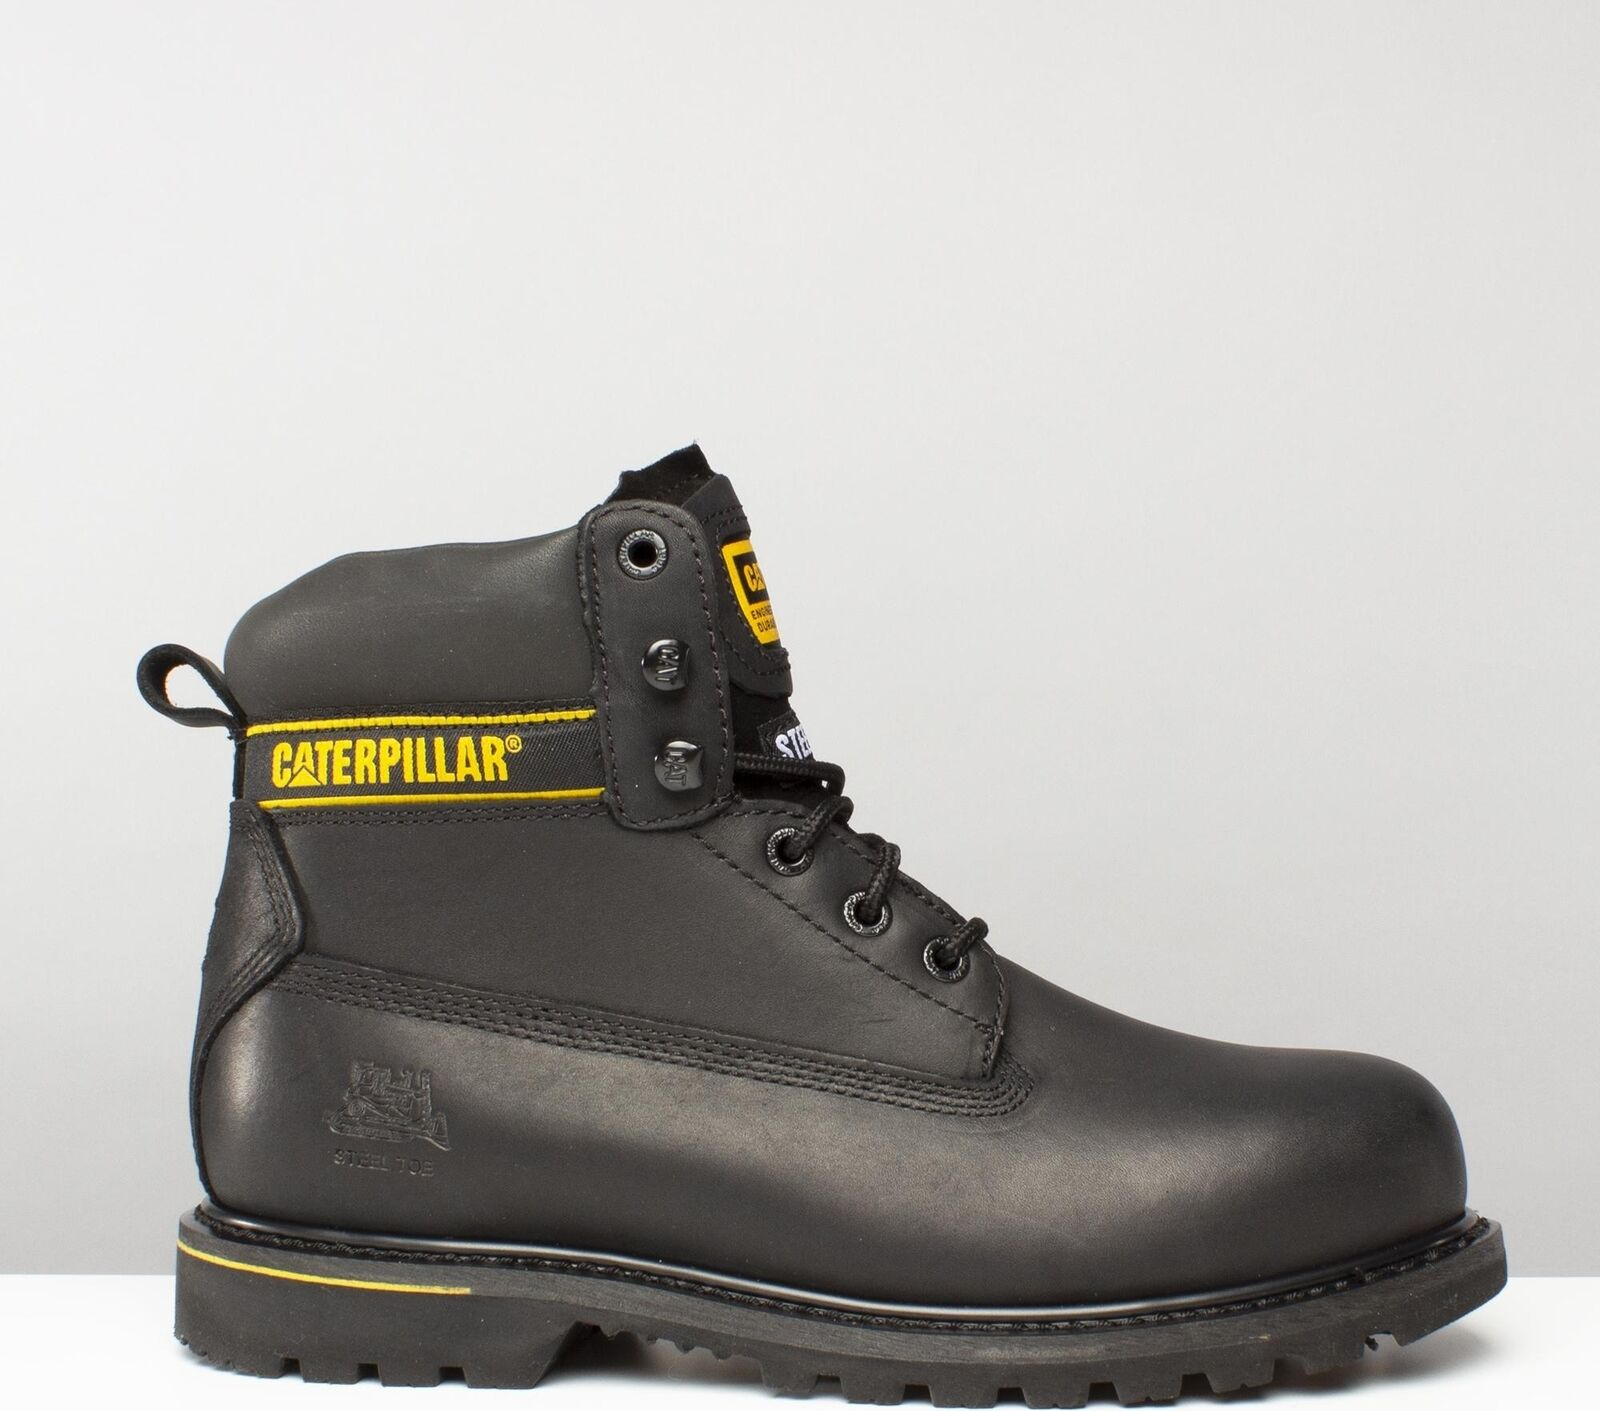 Caterpillar ® HOLTON Mens Waterproof Steel Toe Waterproof Mens Antistatic S3 Safety Boot Black fb5ed7